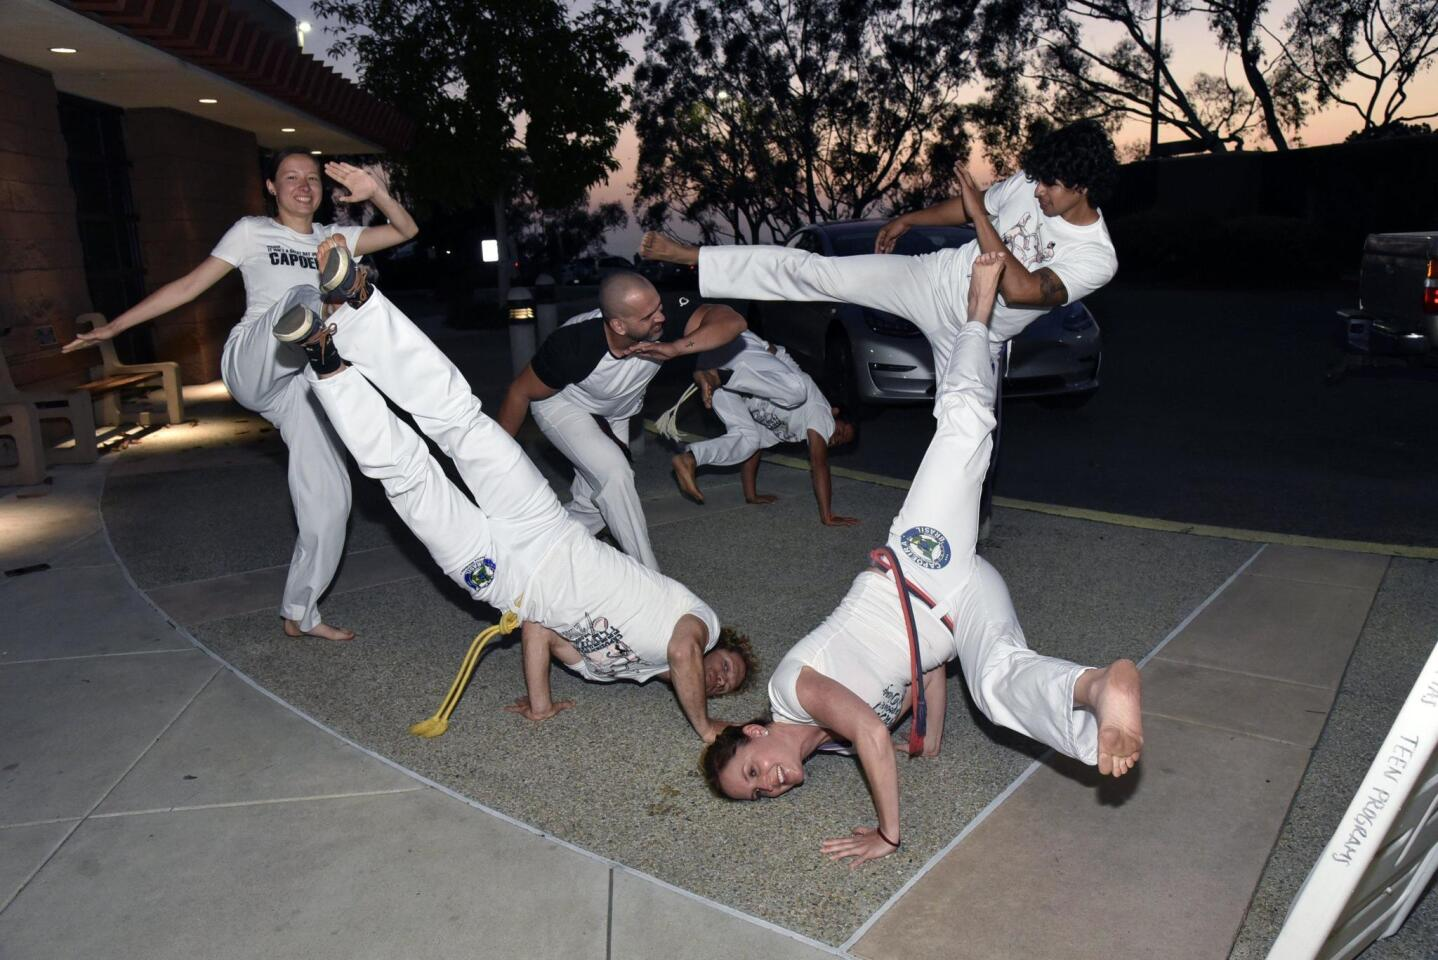 Capoeira Brazil San Diego performers warm up prior to performing